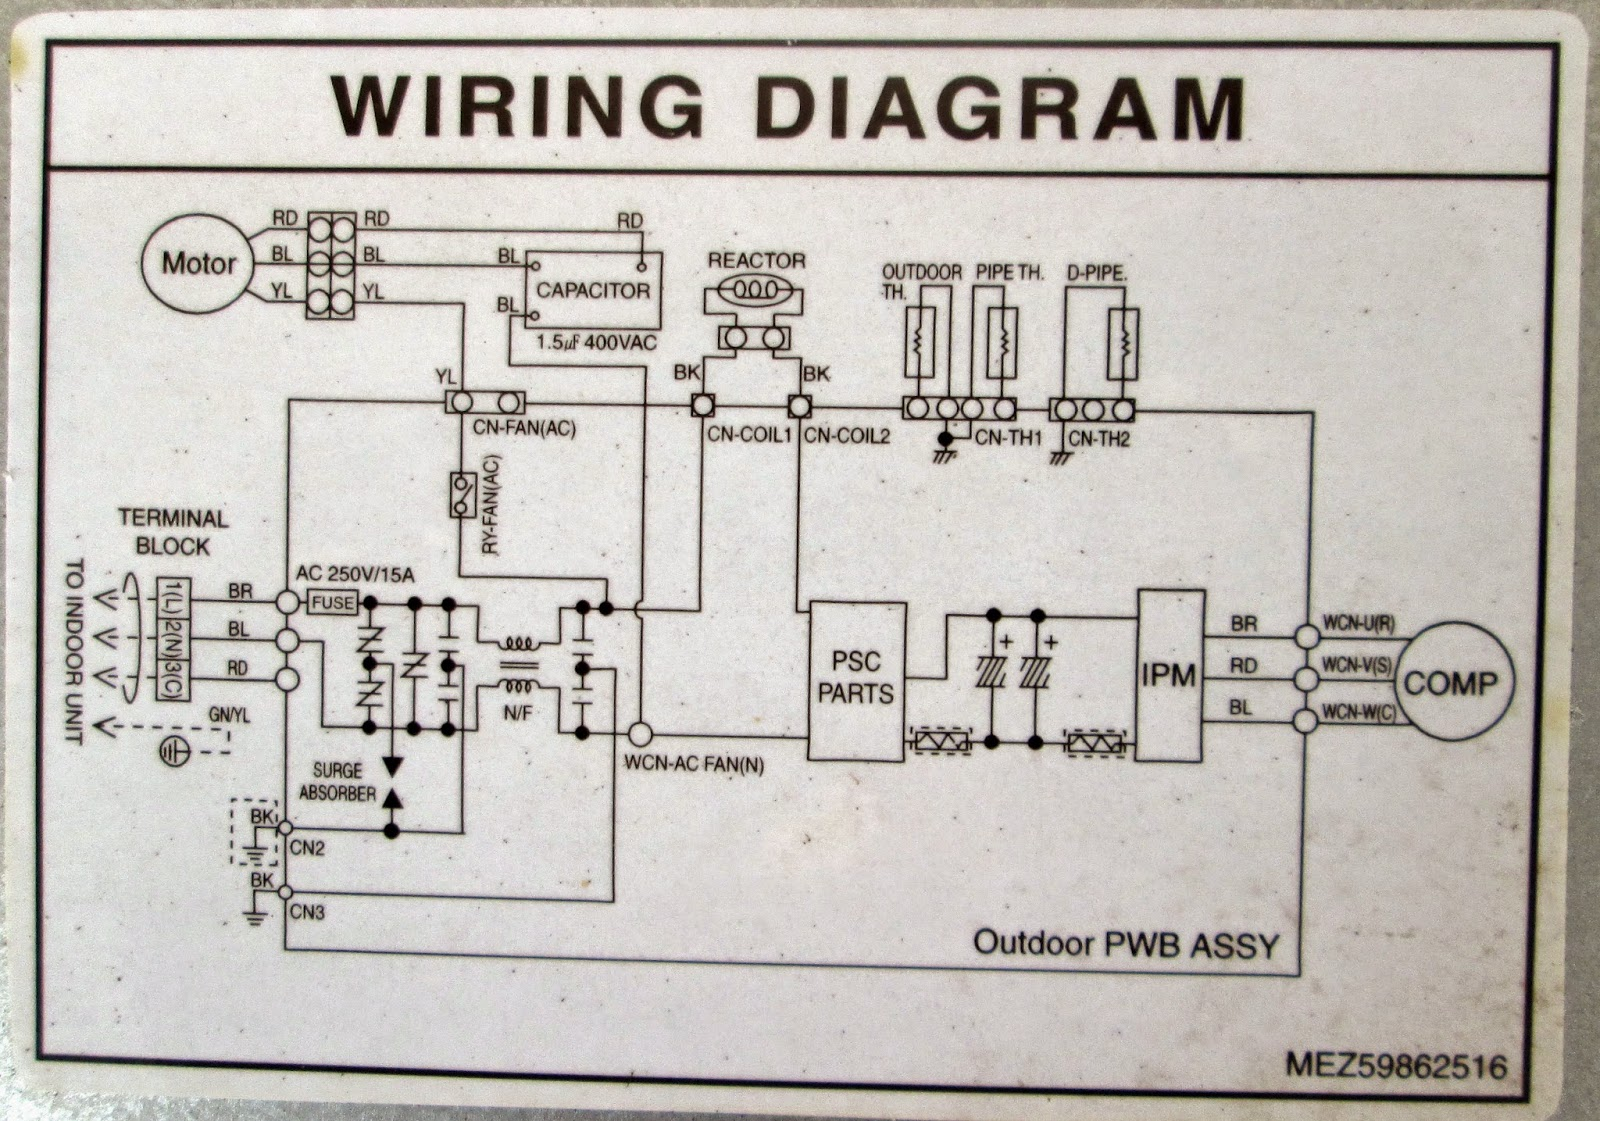 5BA27 Wiring Diagram Modul Ac Split | Wiring ResourcesWiring Resources